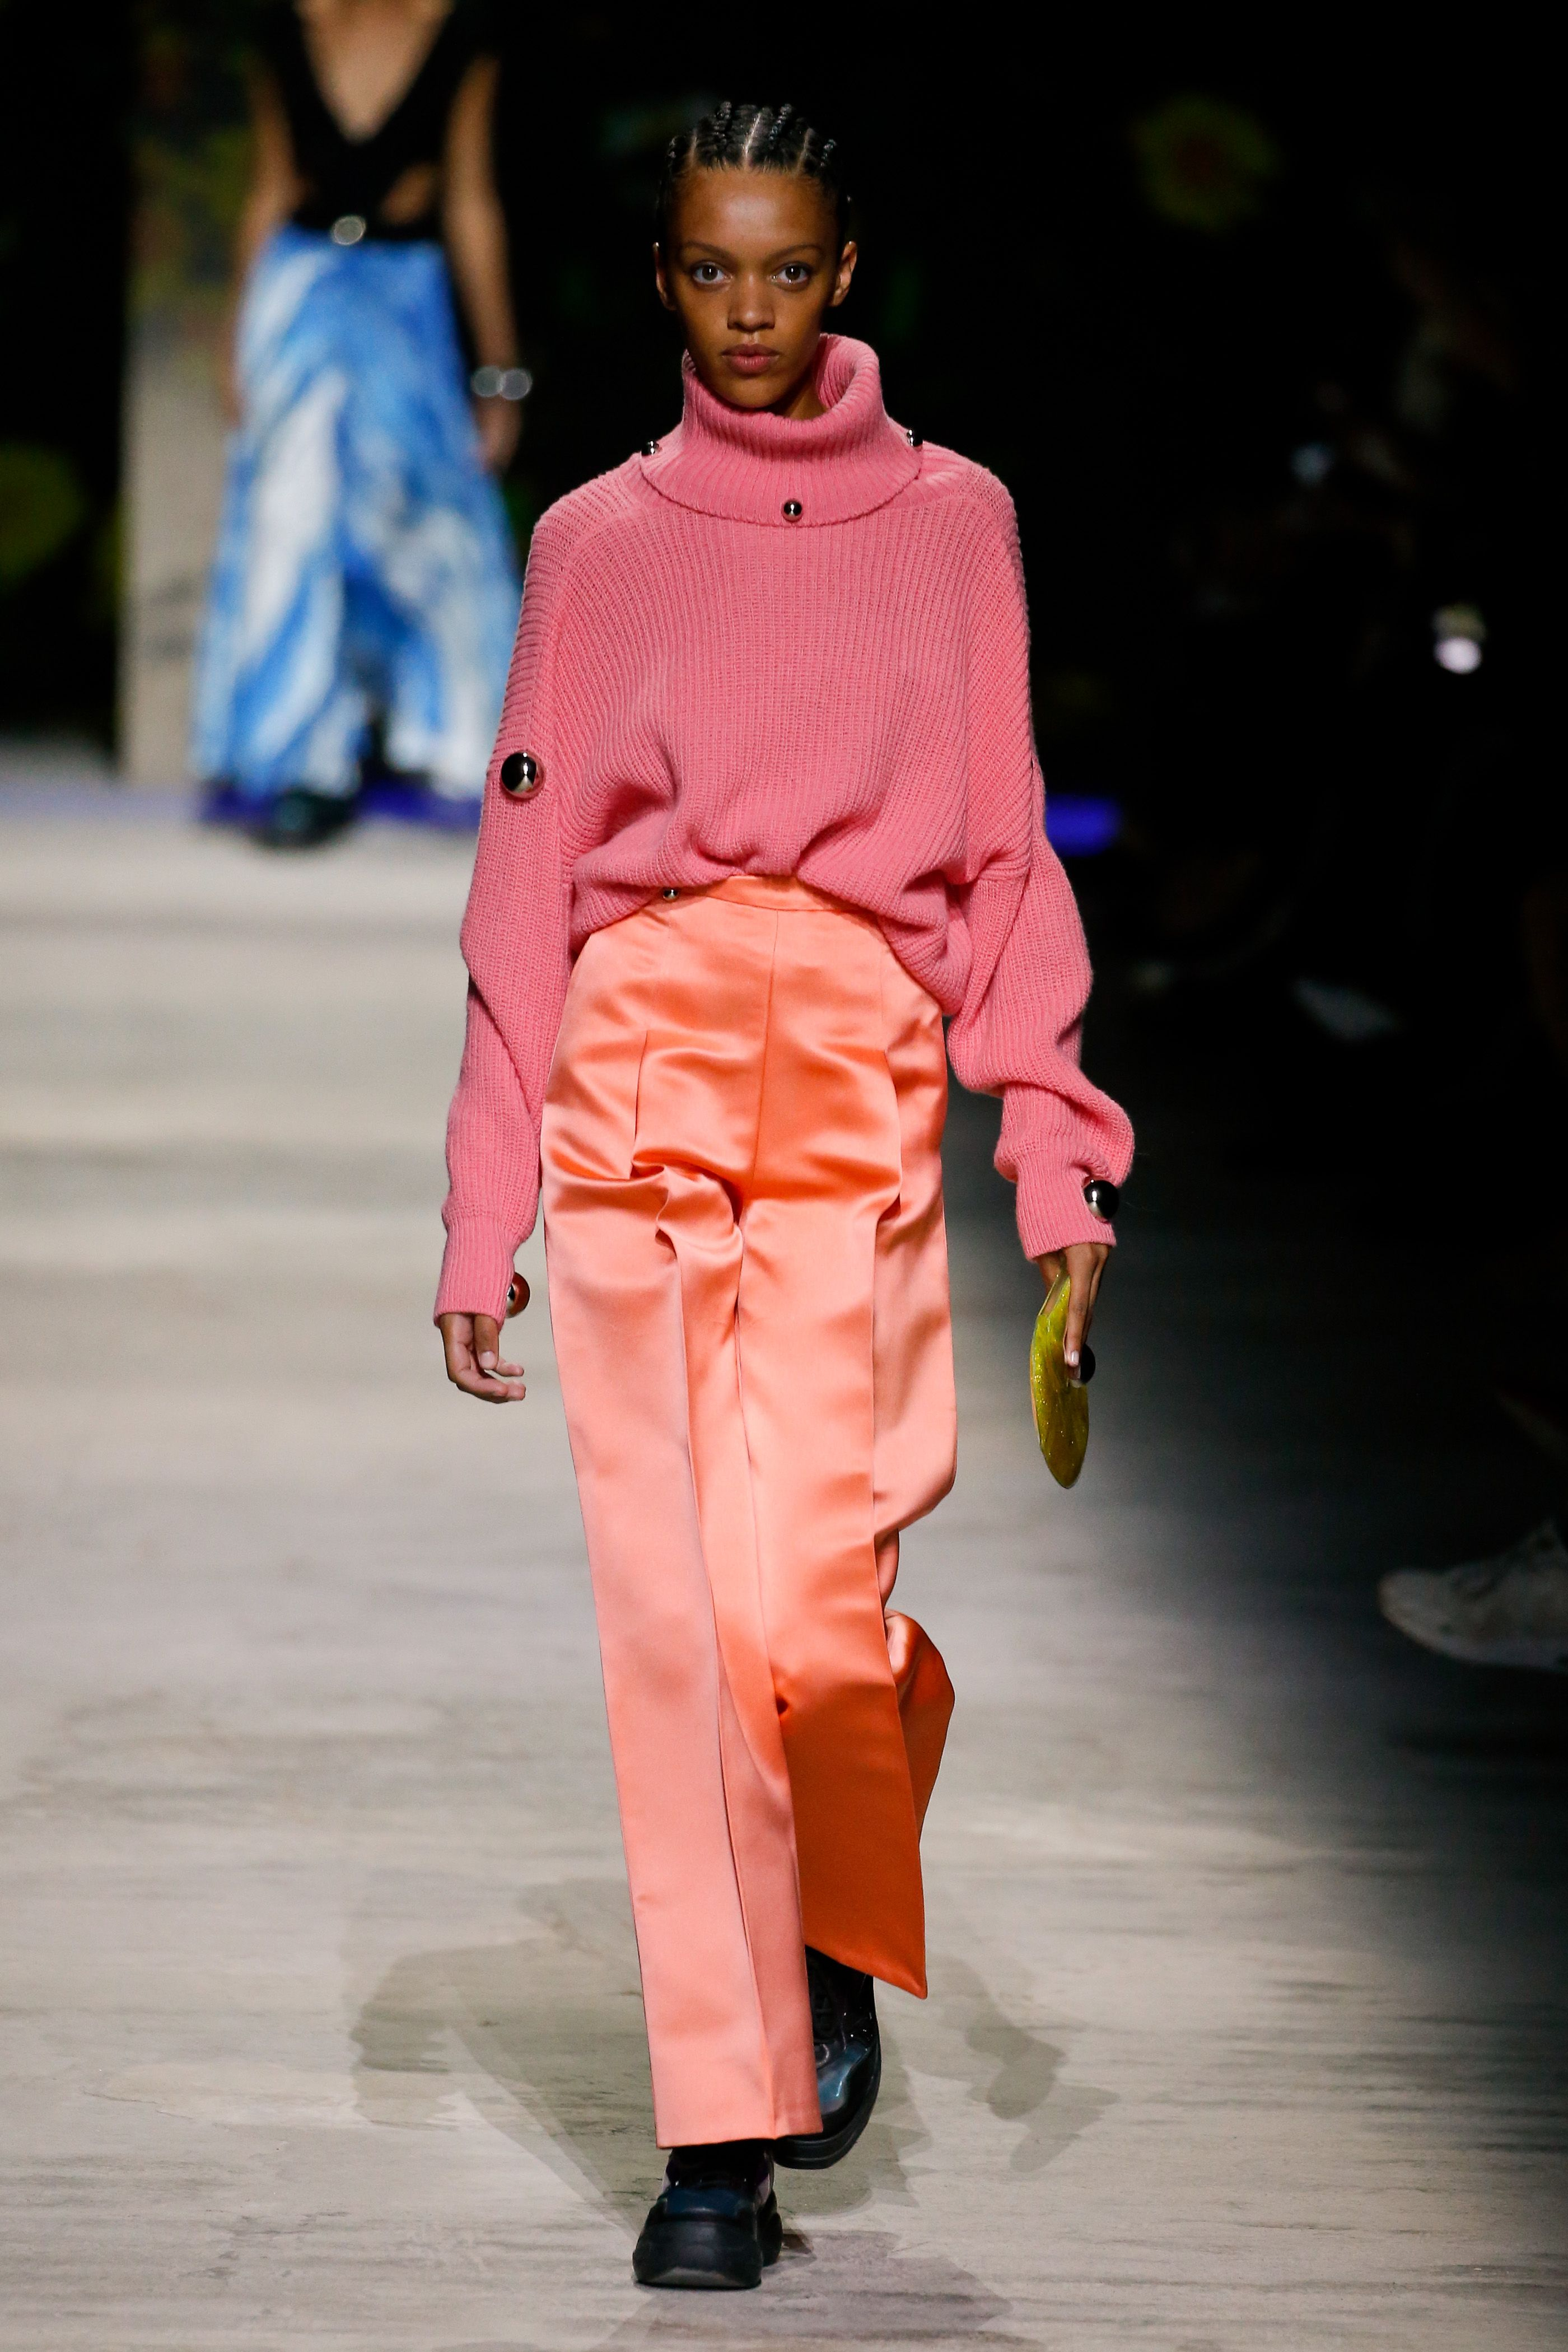 Oversized Sweater Trend Gucci Chanel Runway \u2013 How to Wear